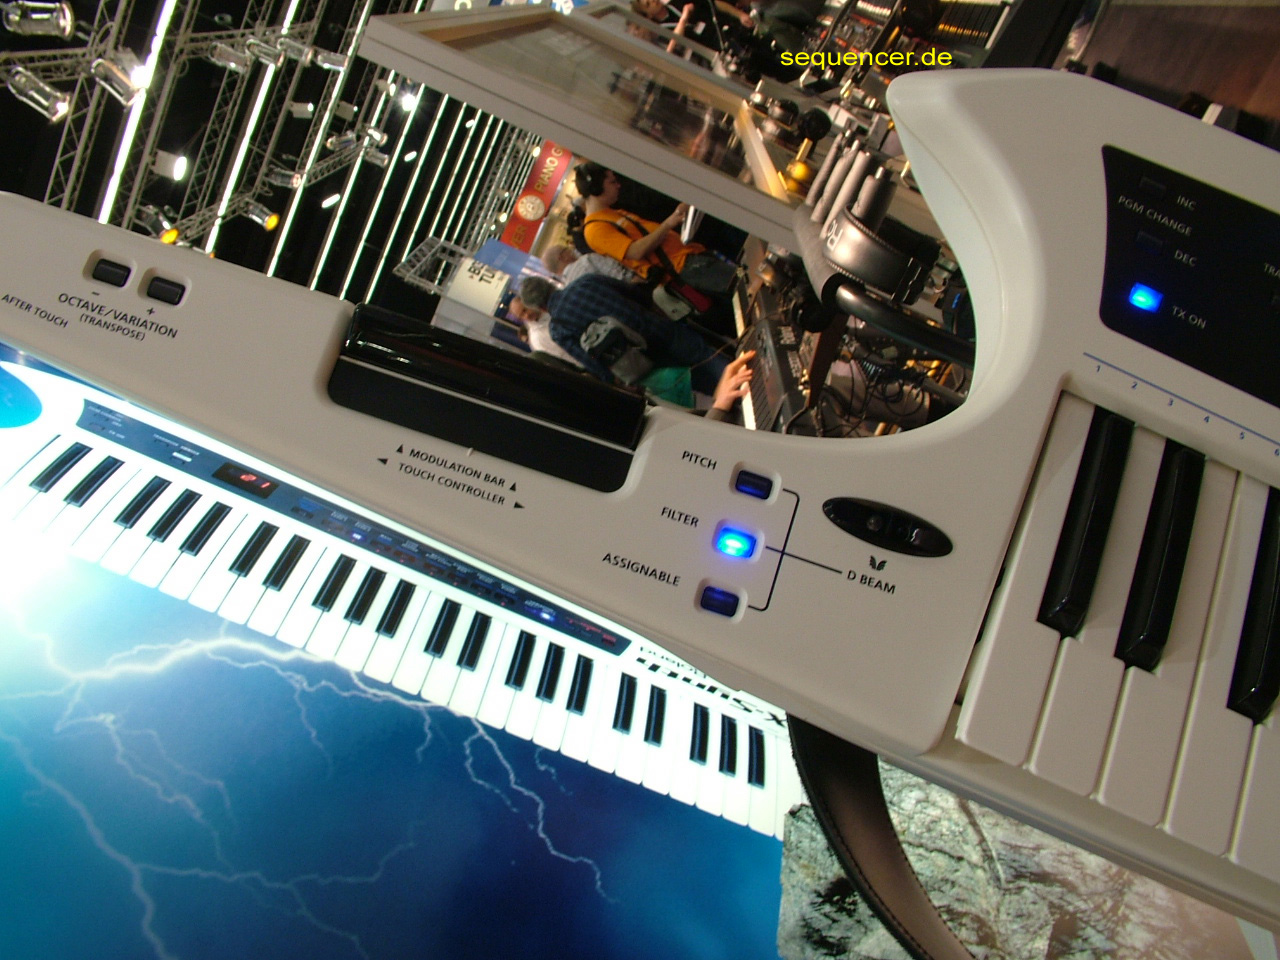 Roland AX-Synth Roland AX-Synth synthesizer